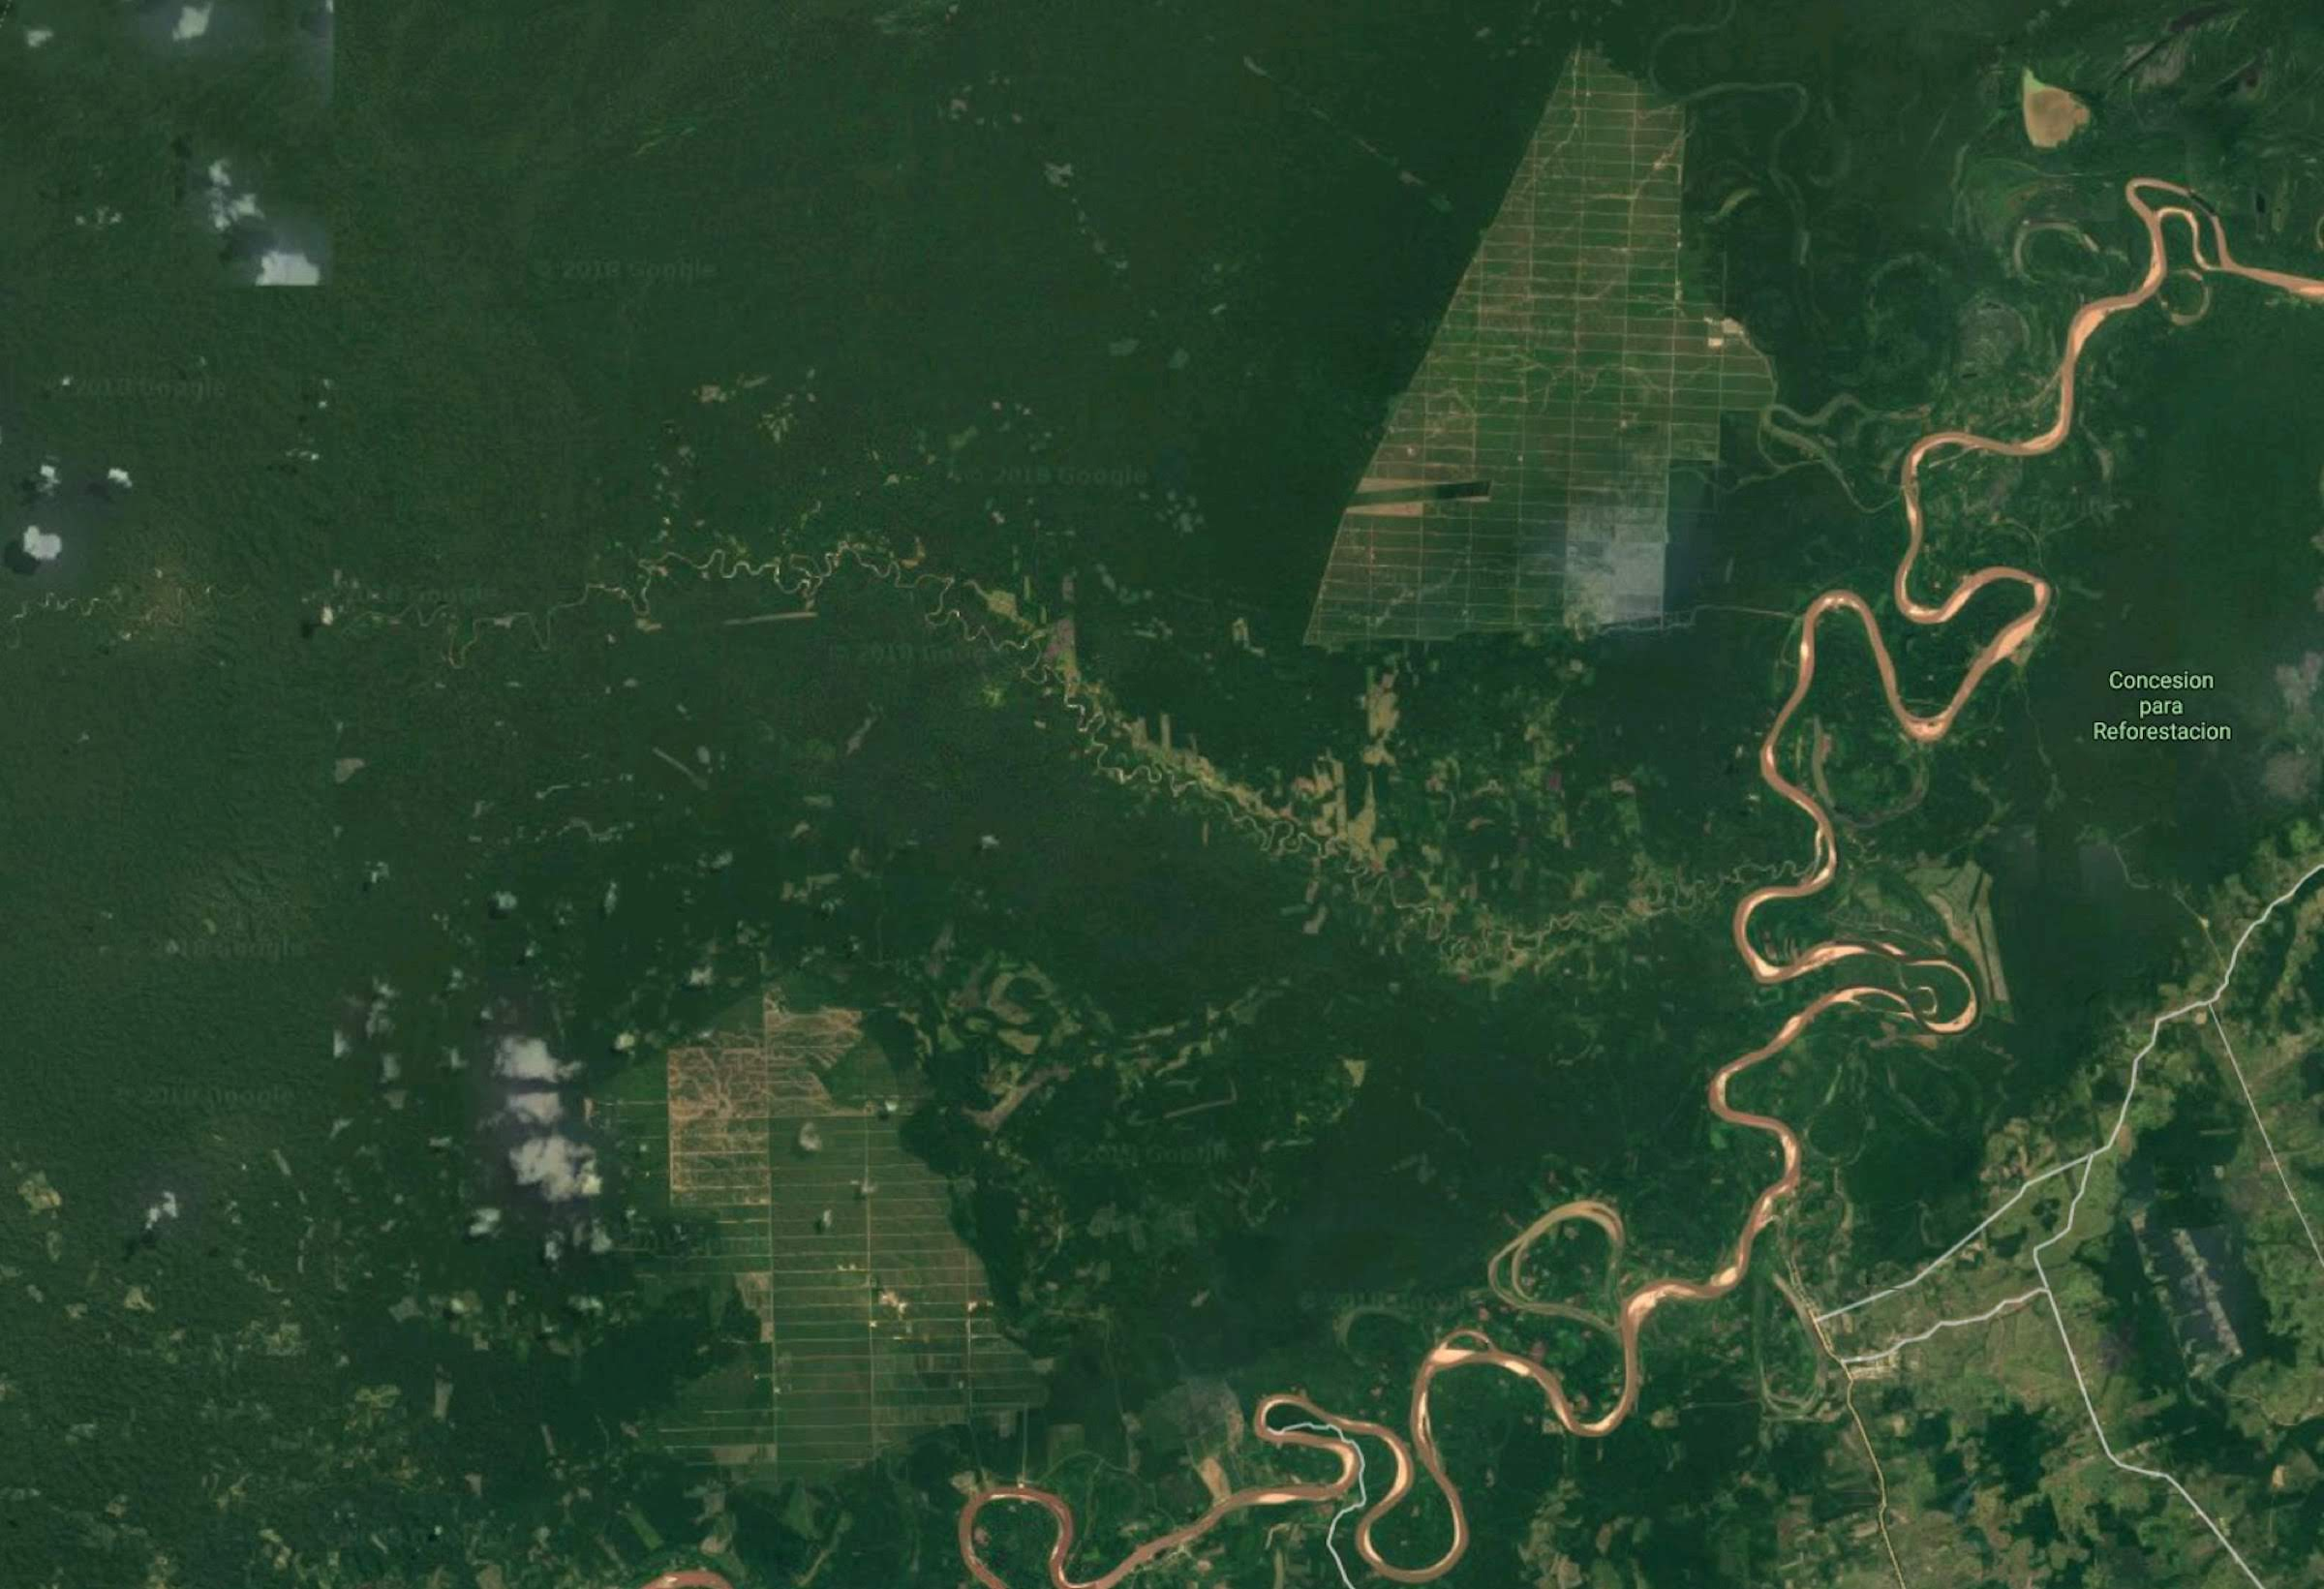 Deforestation is happening quickly in the Peruvian Amazon, particularly in the Ucayali region. This Landsat image from Google shows two massive swaths of clearcut forest north of Pueblo Libre—13,000 hectares (32,000 acres) in total.